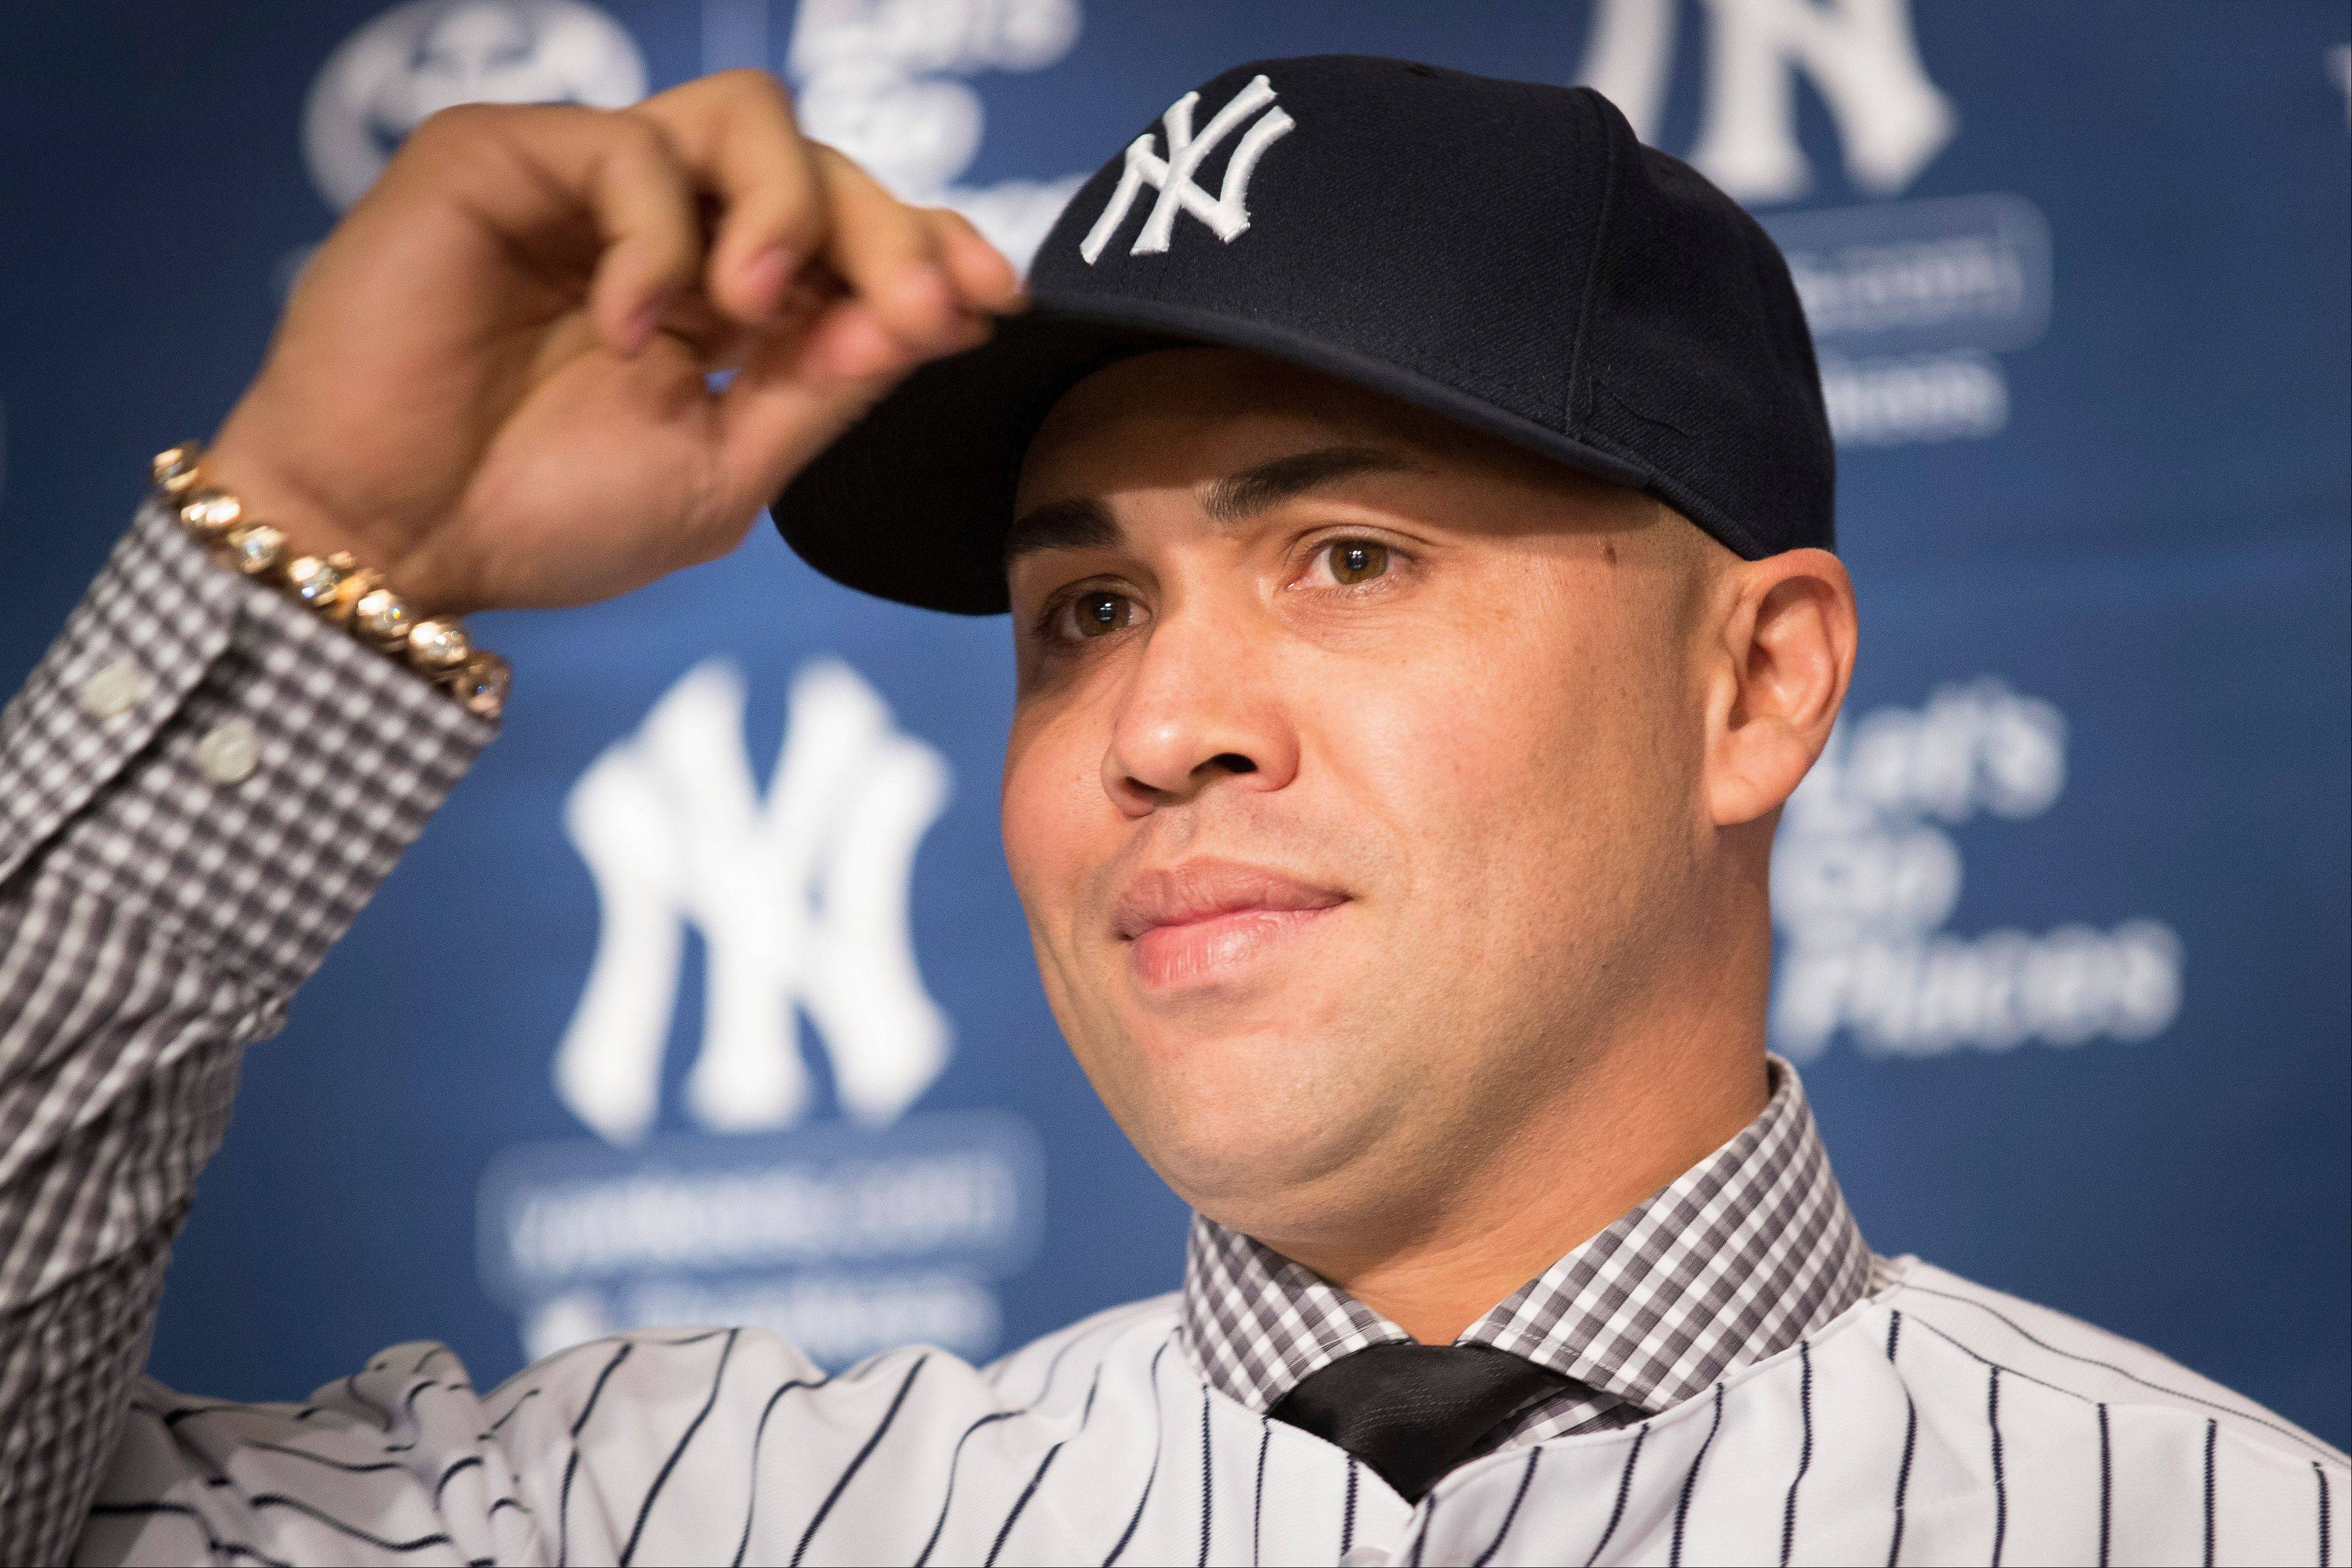 Outfielder Carlos Beltran signed with the New York Yankees for $45 million over three years.